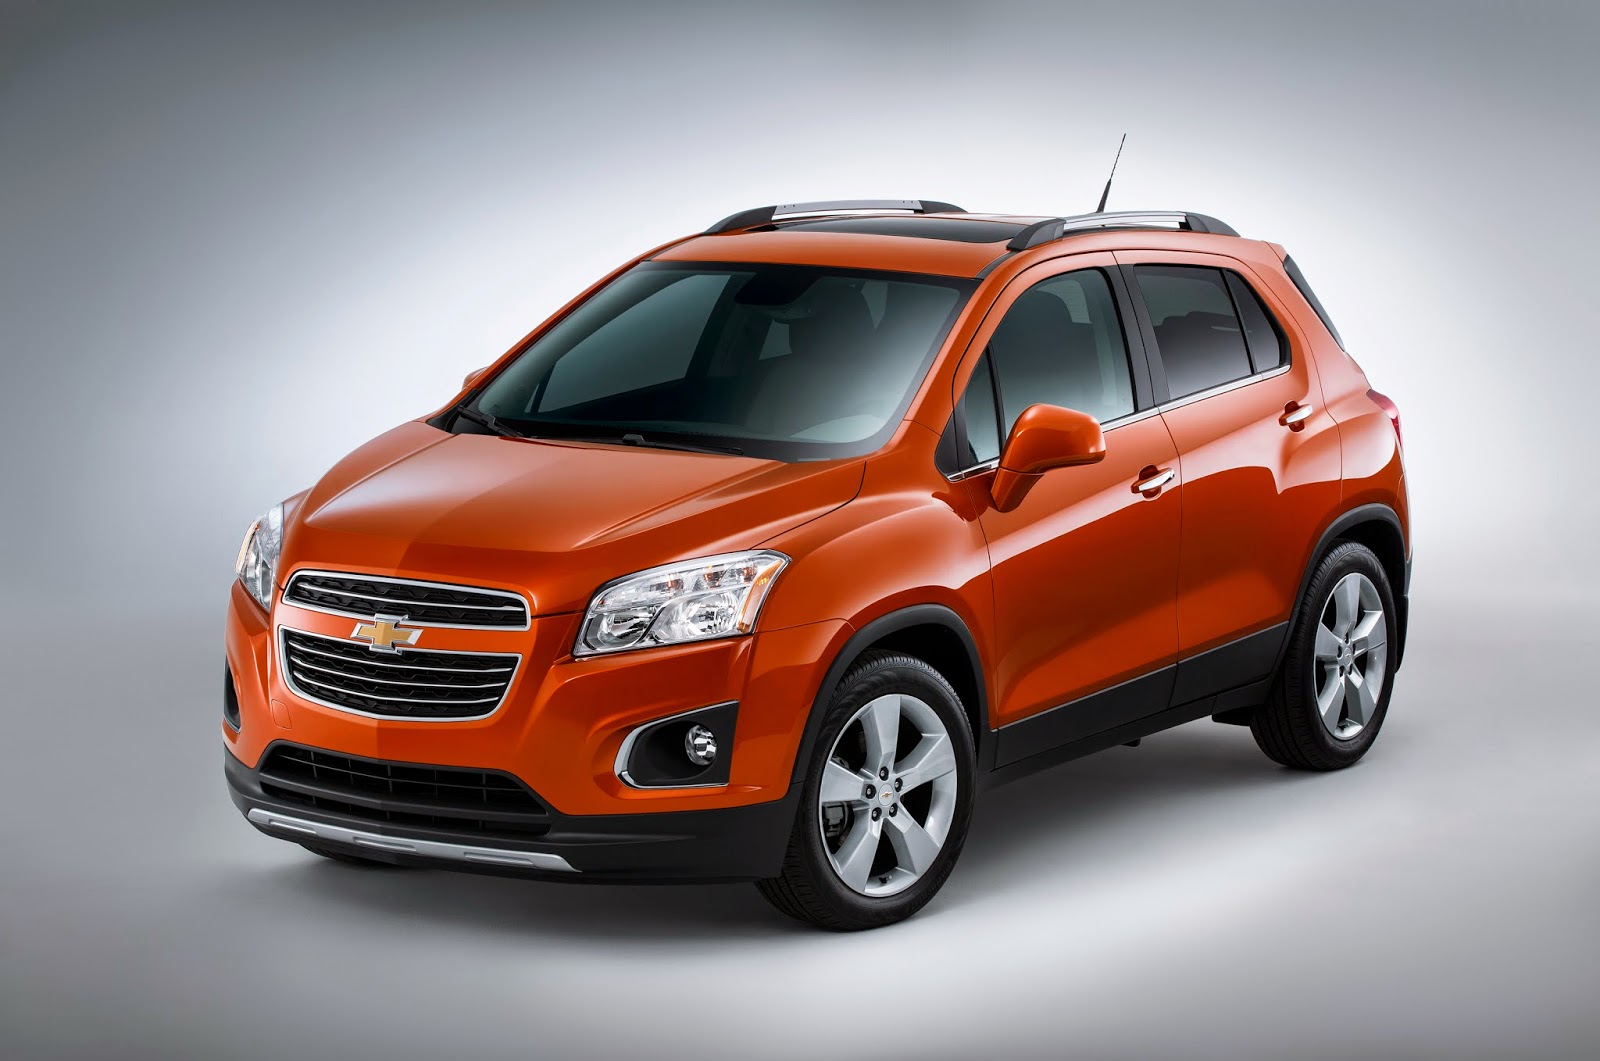 Chevy Trax 2018 All New Car Release And Reviews Wiring Diagram For Cruise Control Richard Straight To The News 2015 Chevrolet